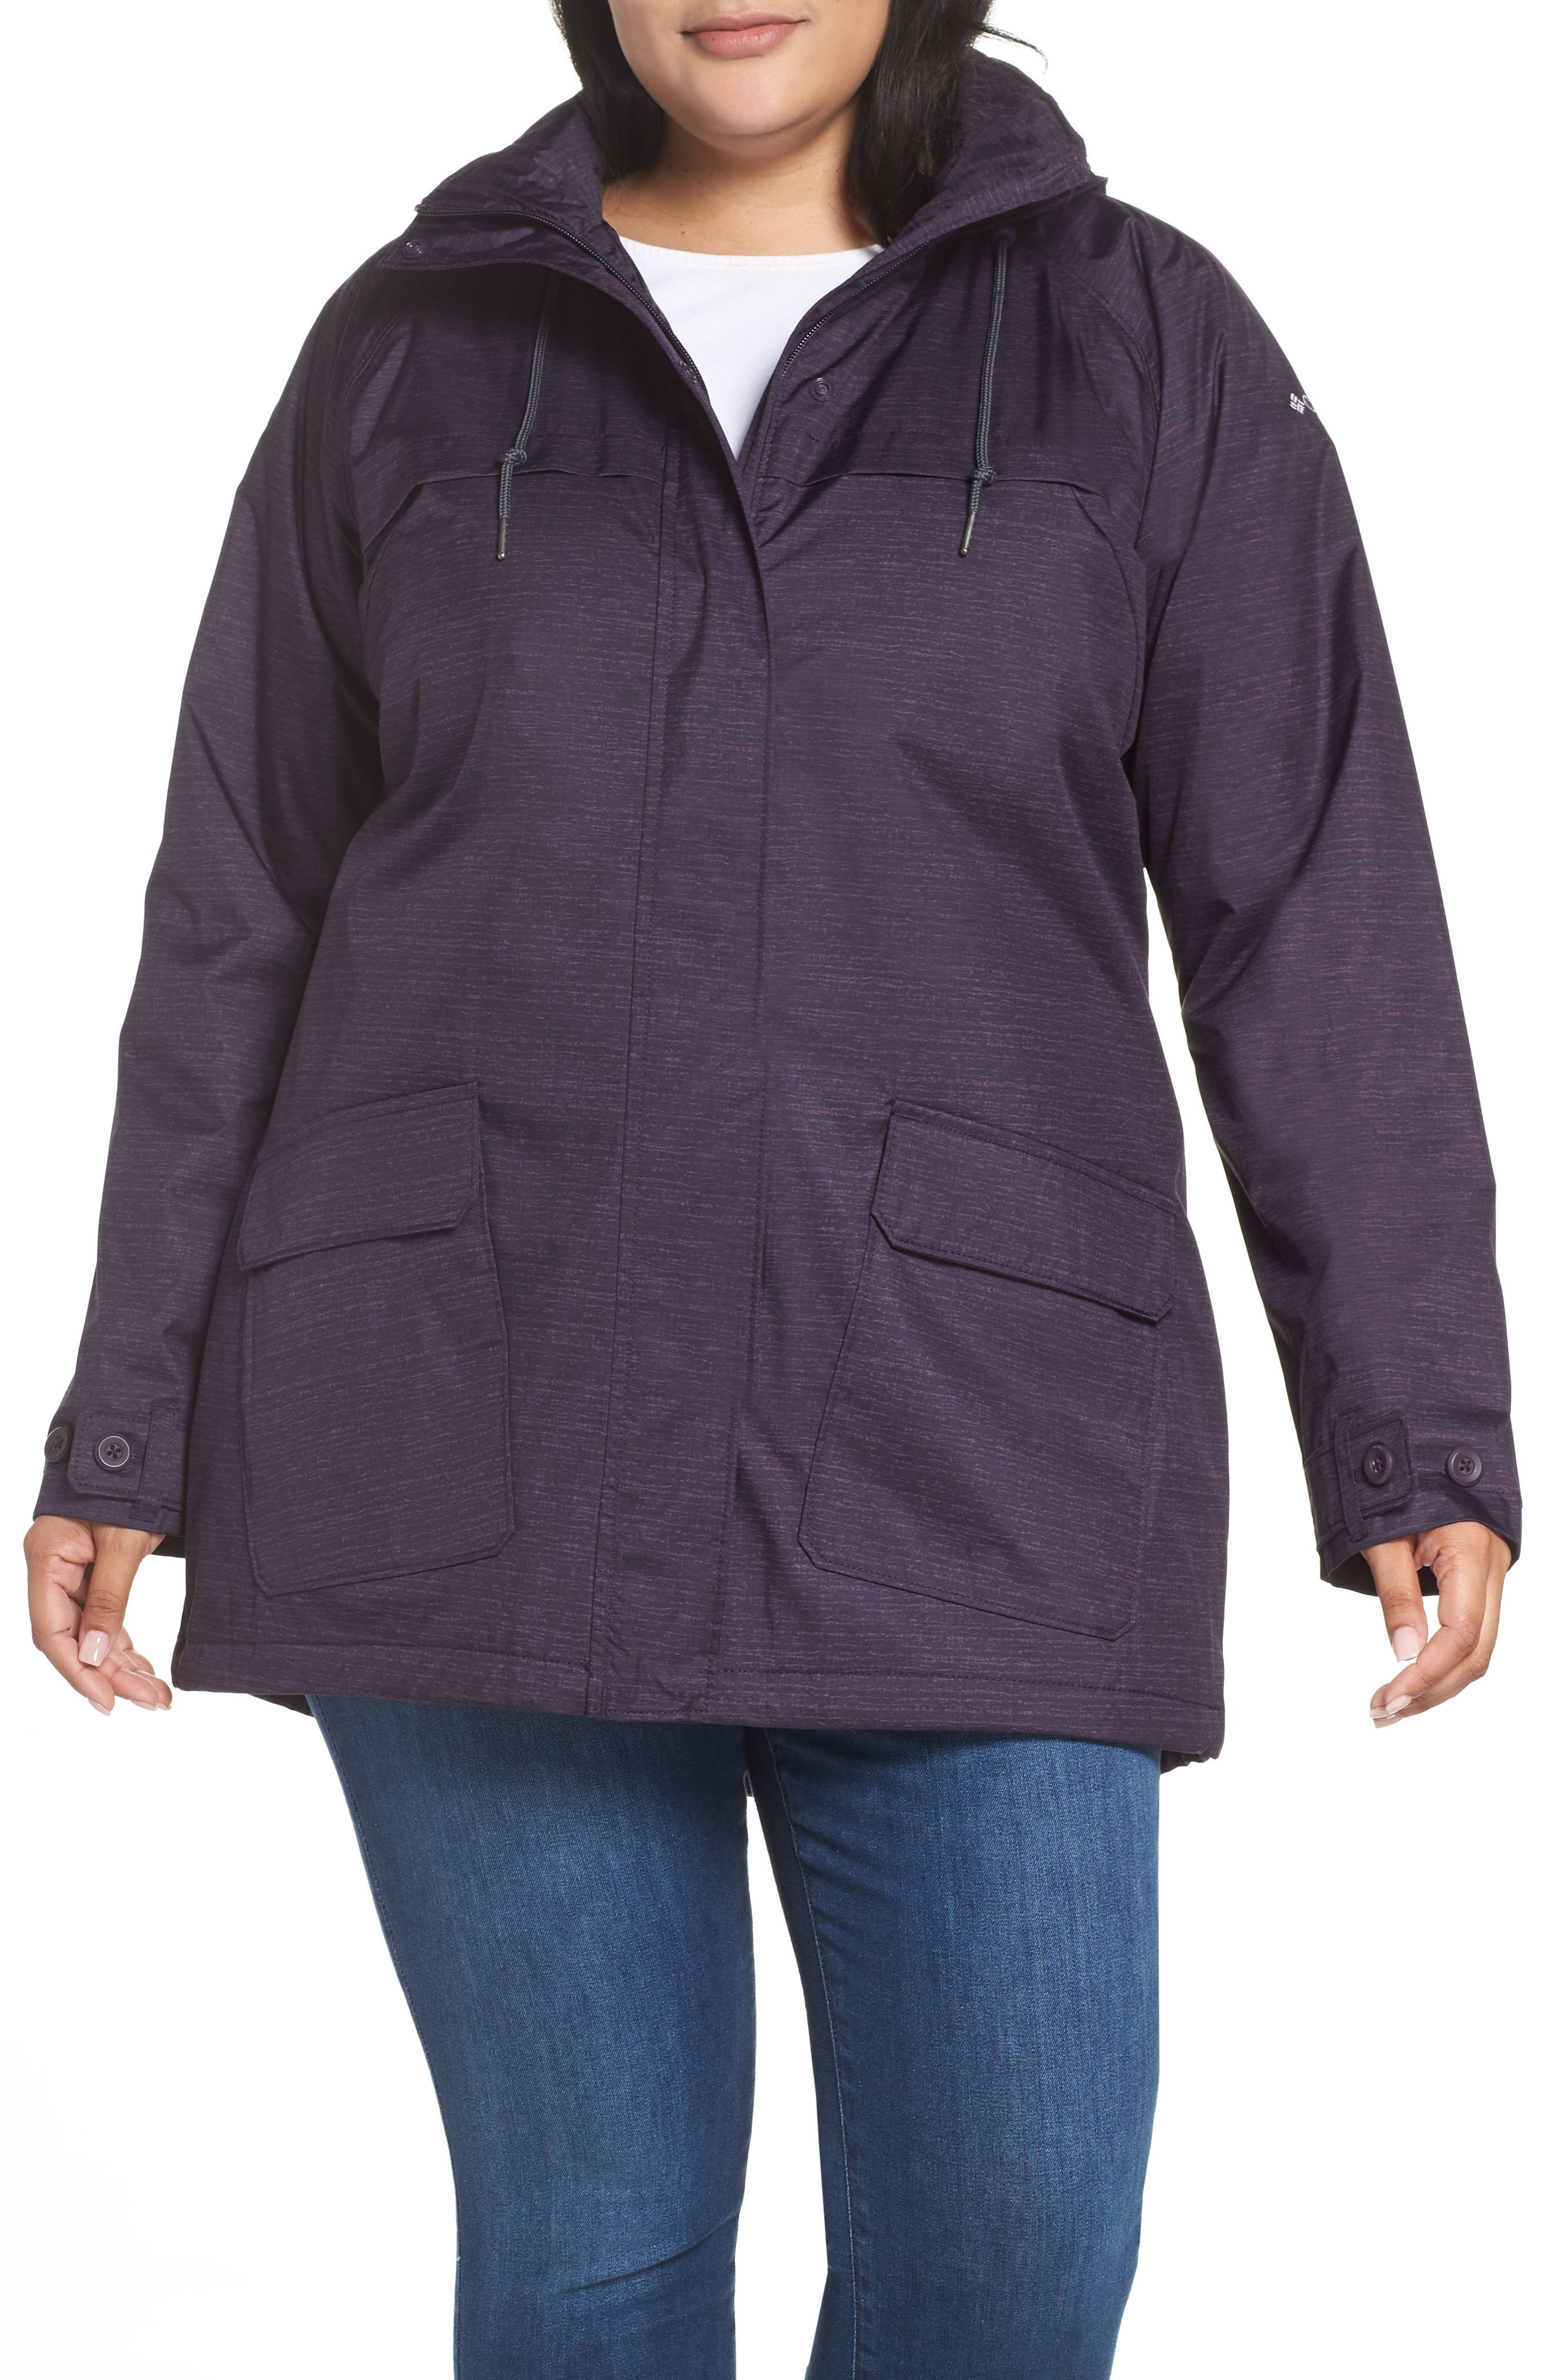 Lookout Crest Omni-Tech Waterproof Jacket,                             Main thumbnail 1, color,                             DARK PLUM TEXTURE PRINT